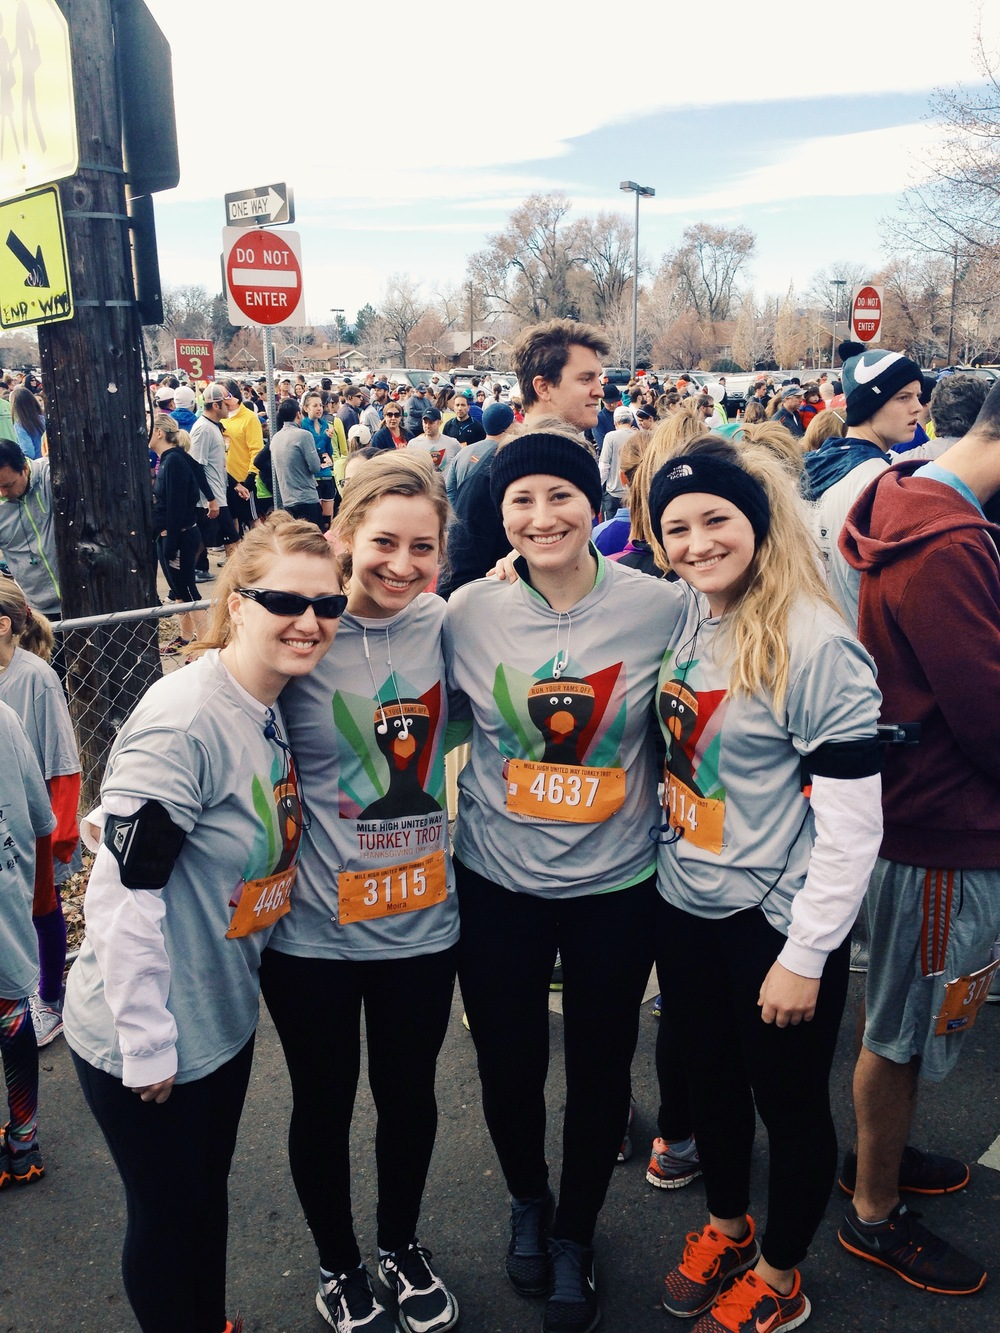 My sisters and I ran the Turkey Trot at Washington Park! It was a good way to start the day.